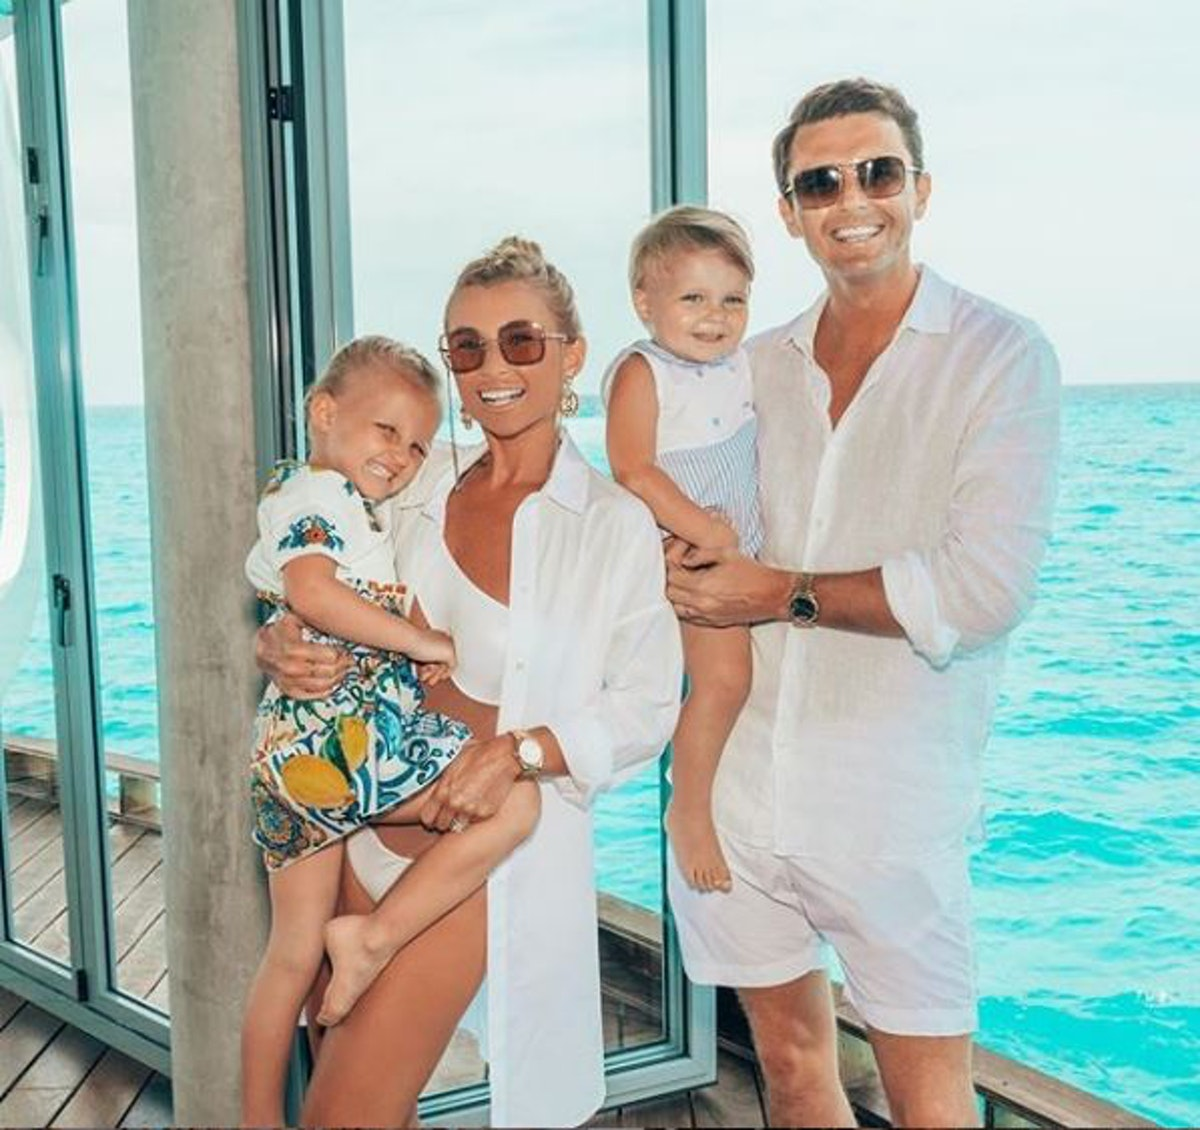 A famous face serenaded Billie Faiers at her Maldives wedding